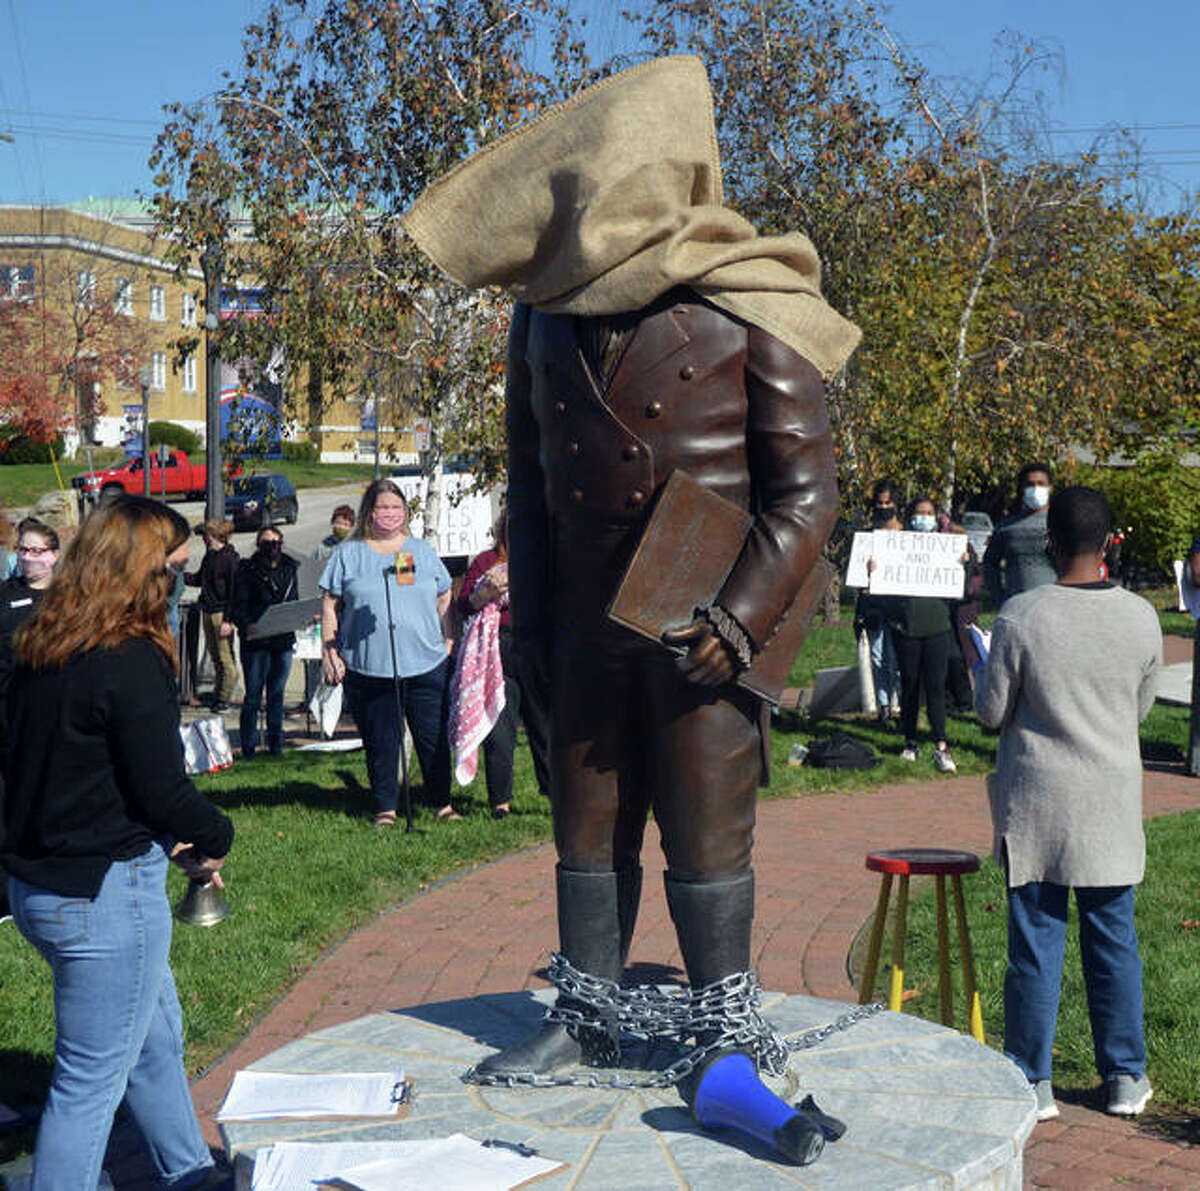 An October 2020 rally called for the removal of the Ninian Edwards statue. Edwards' historical information came to light which lead to calls for it to be taken down. In life, Edwards is said to have supported slavery.